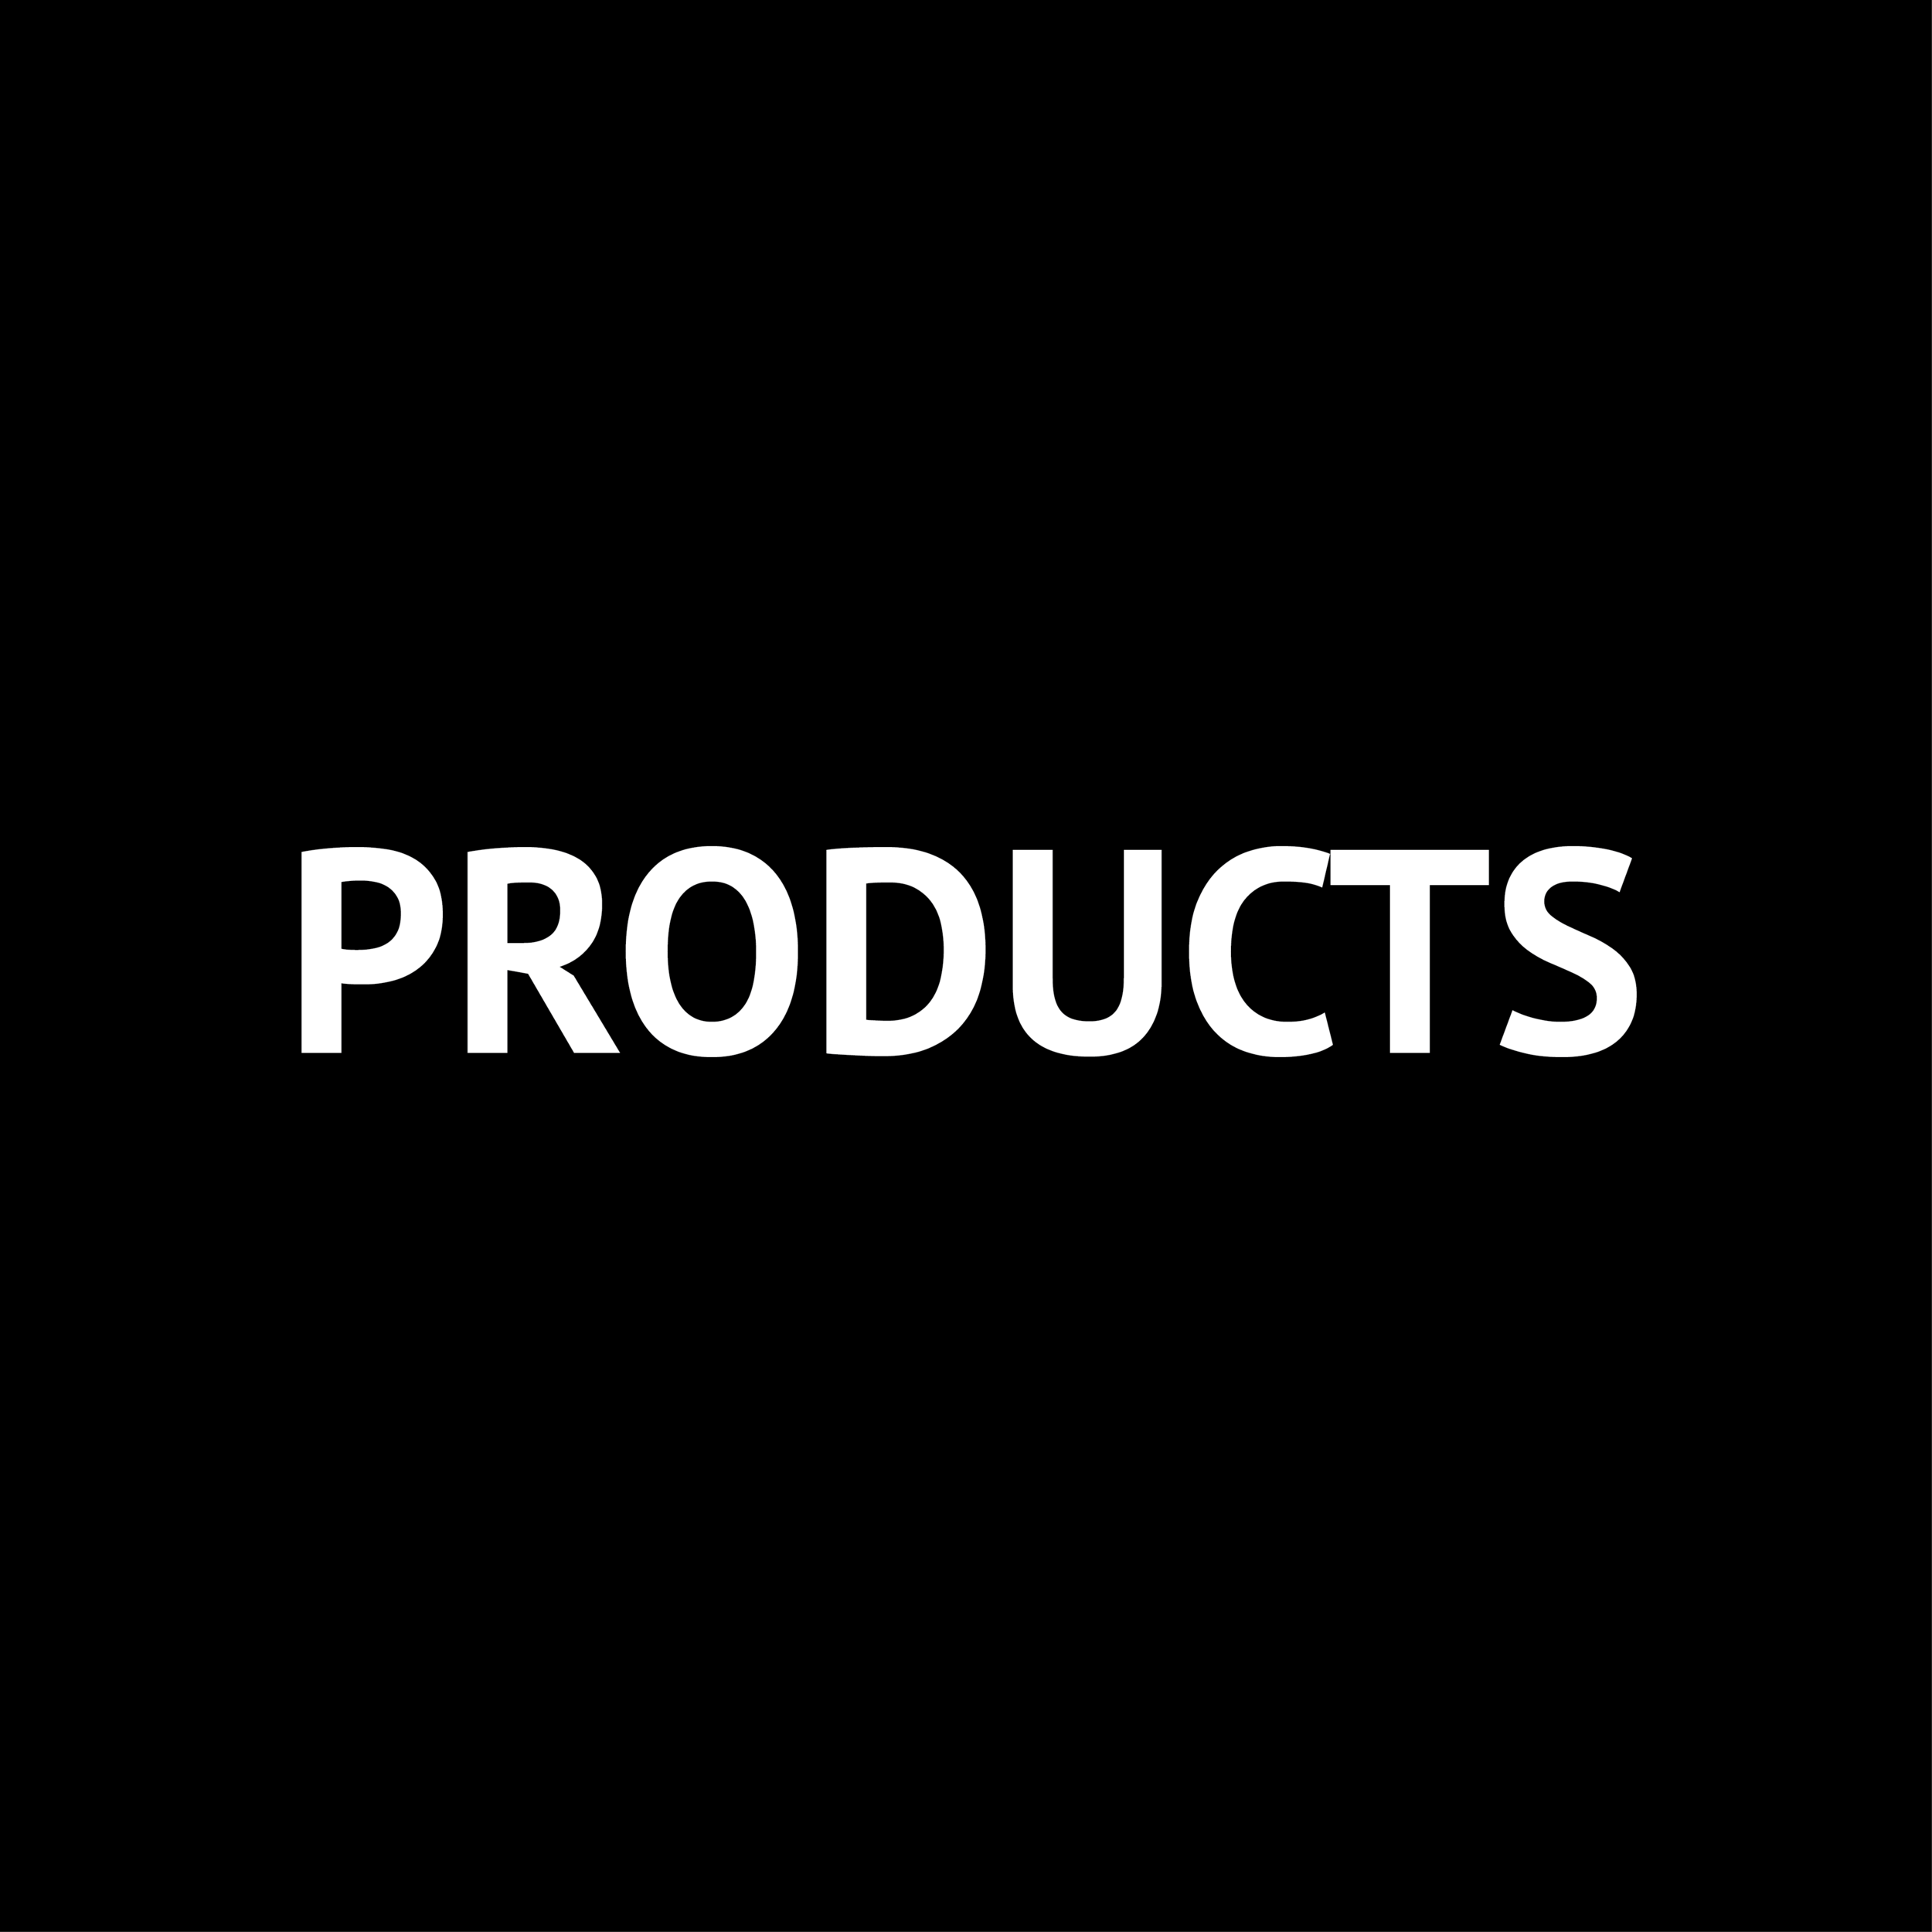 Bre_products.png